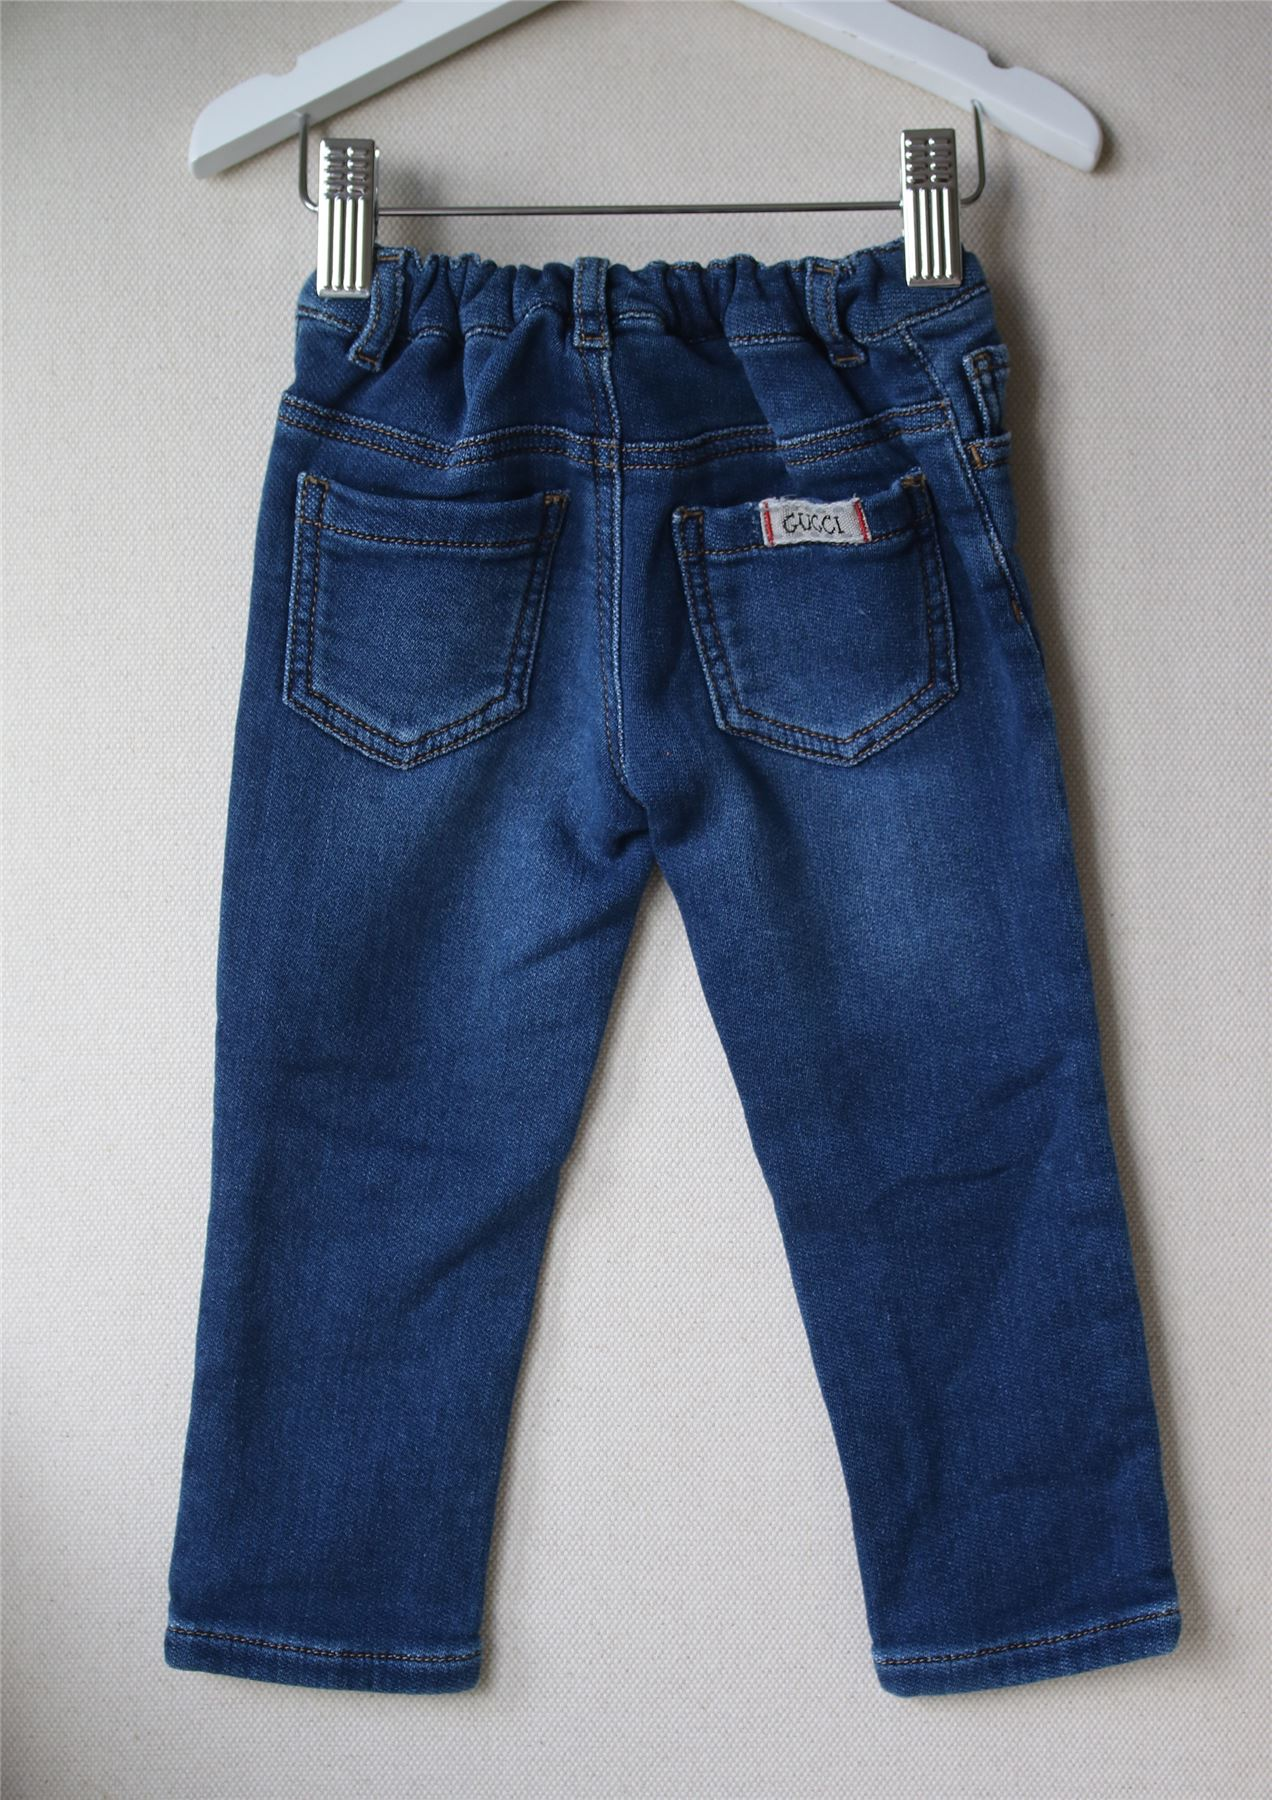 54aa6765a1b9 Details about GUCCI BABY BLUE PATCH JEANS 12-18 MONTHS